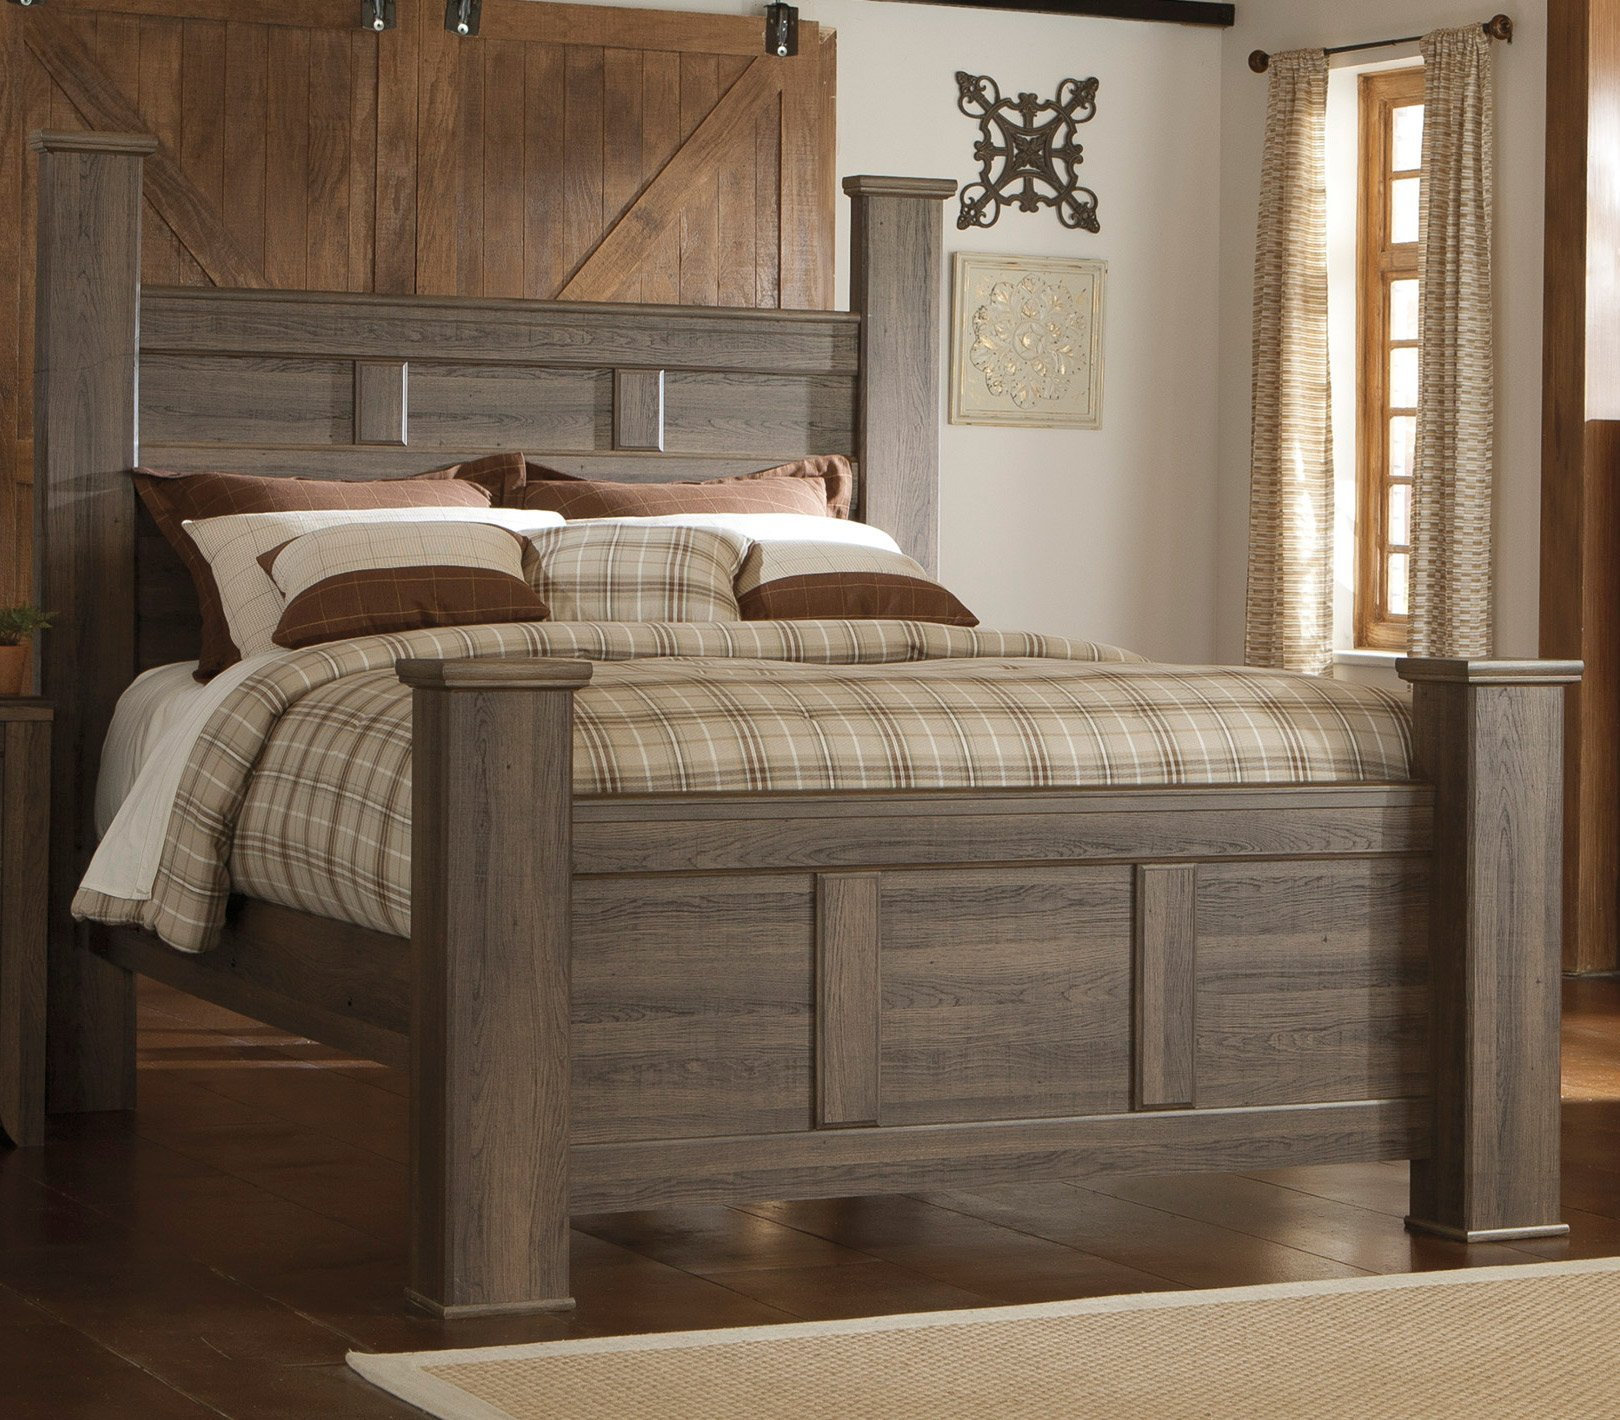 Rustic Modern Driftwood Brown Queen Size Bed   Fairfax